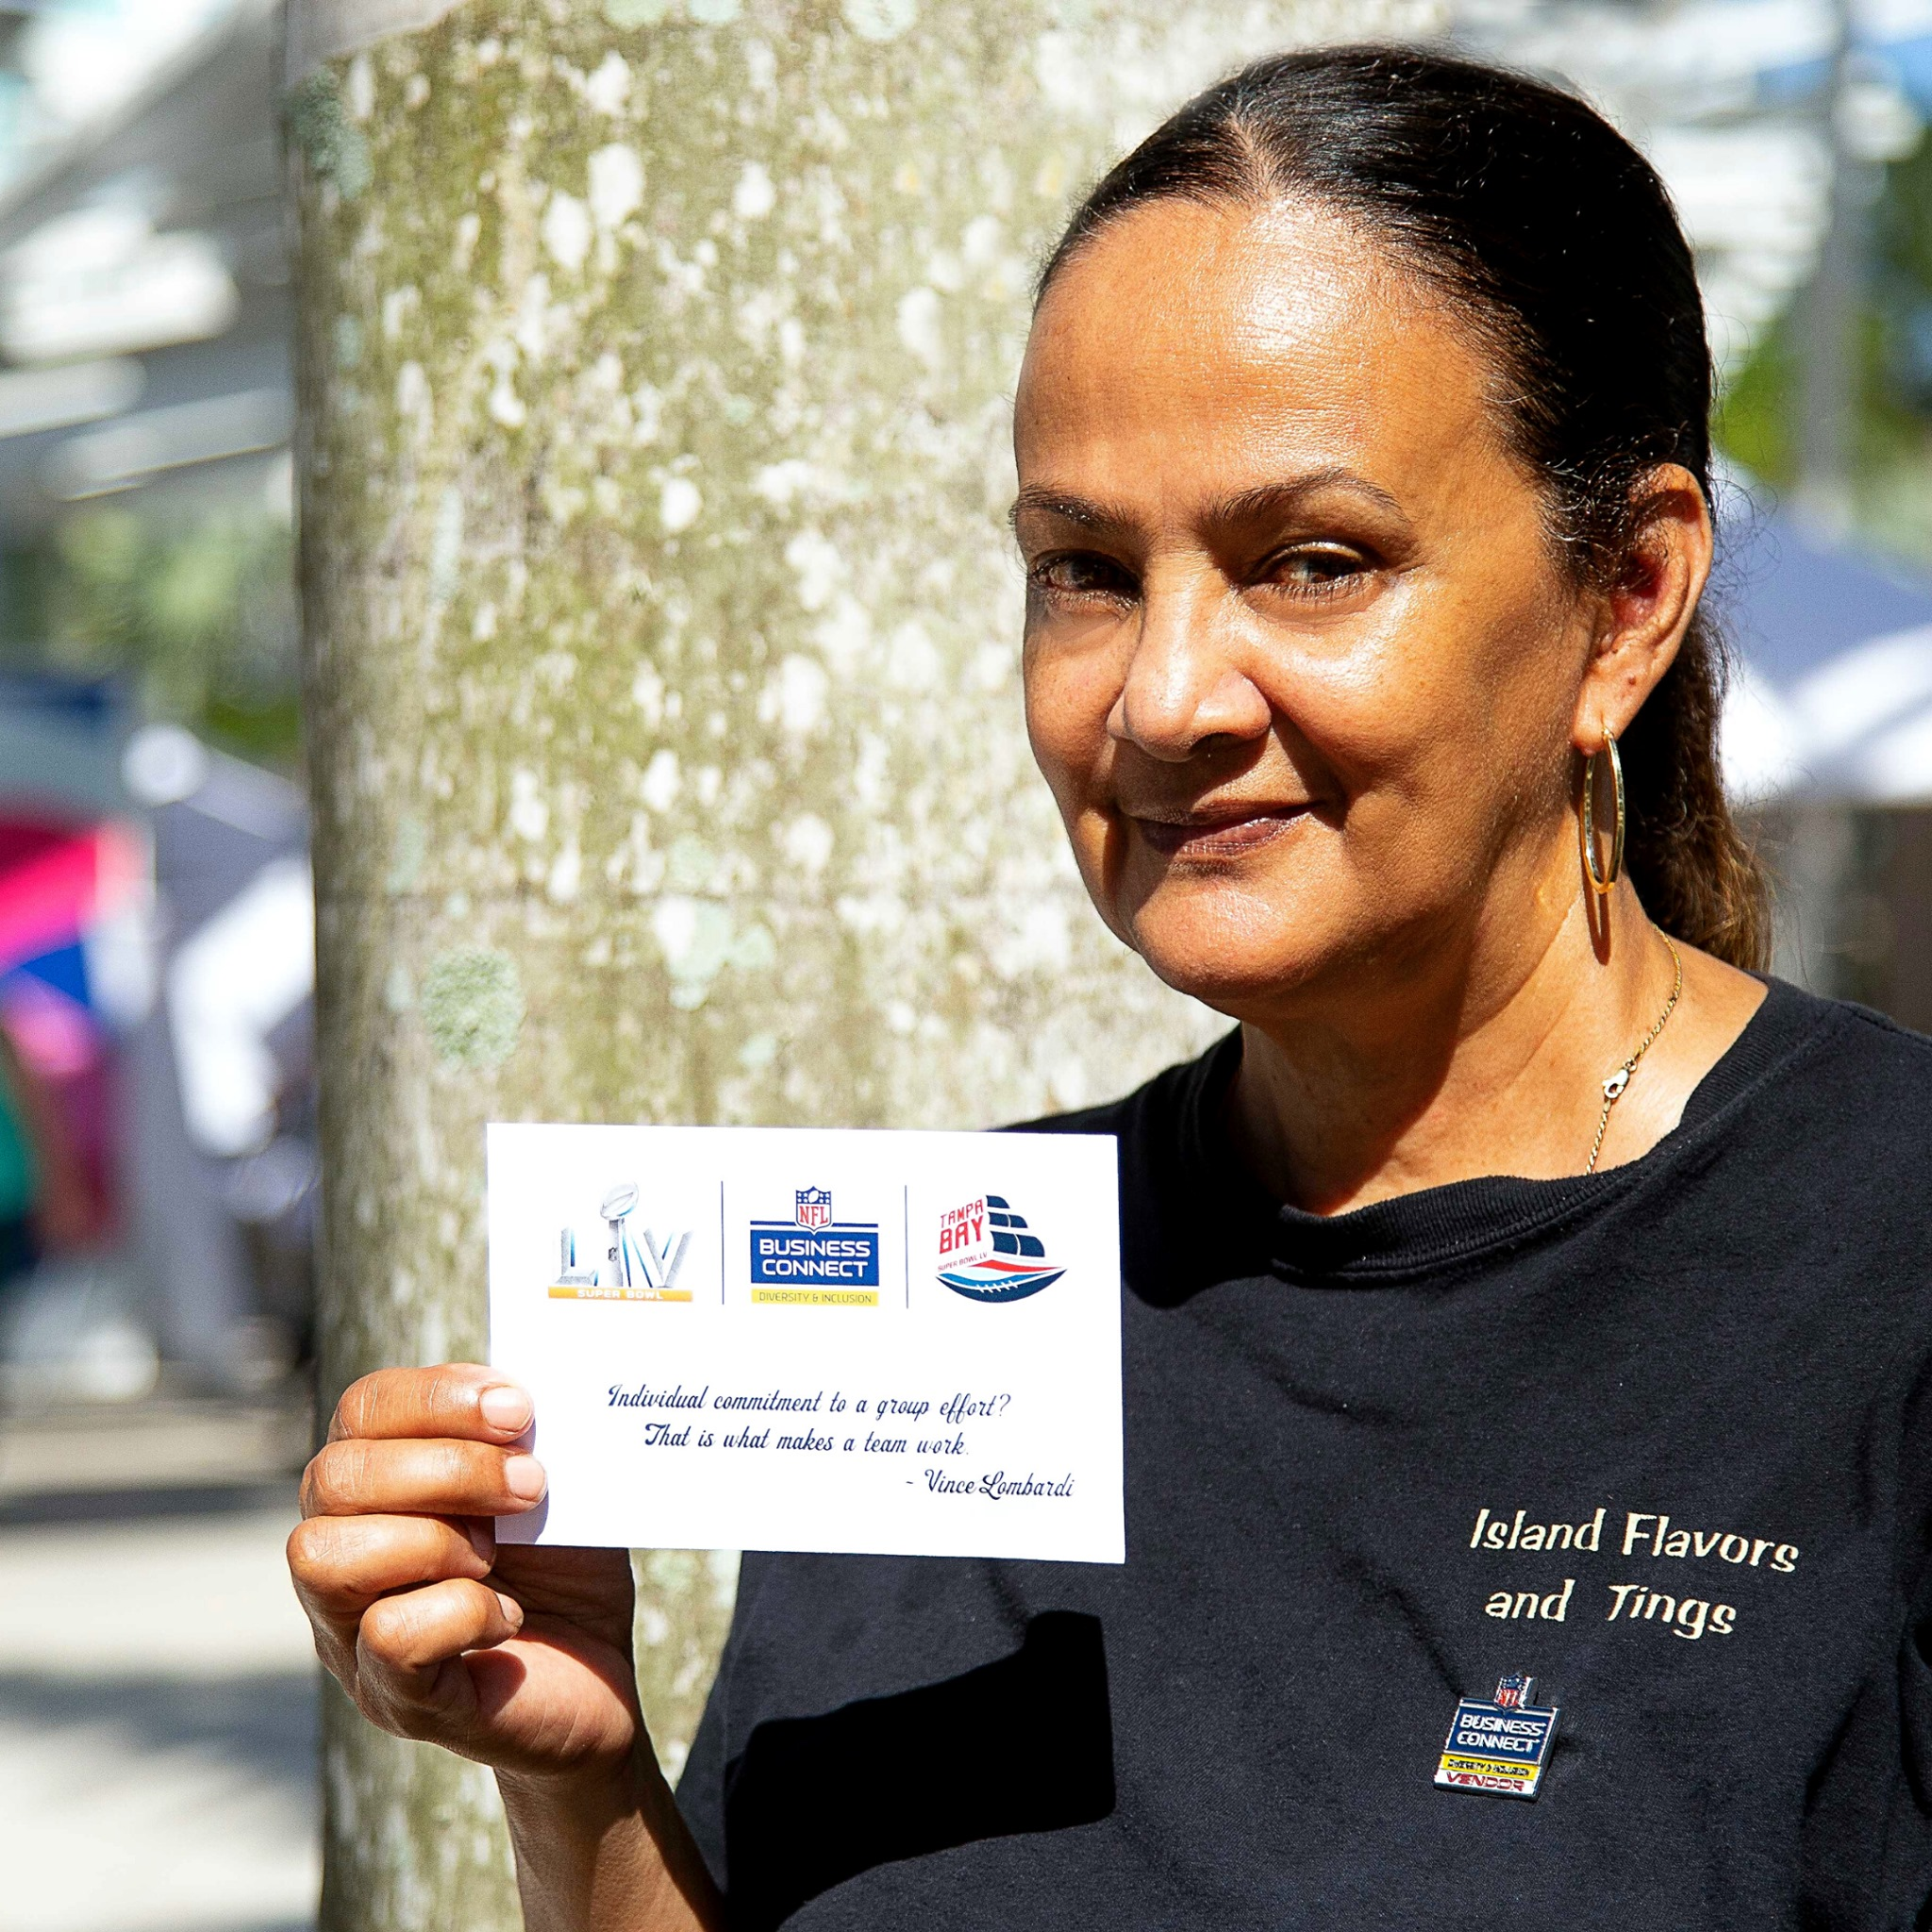 Helena Josephs wearing a black t-shirt holding her Business Connect invitation.